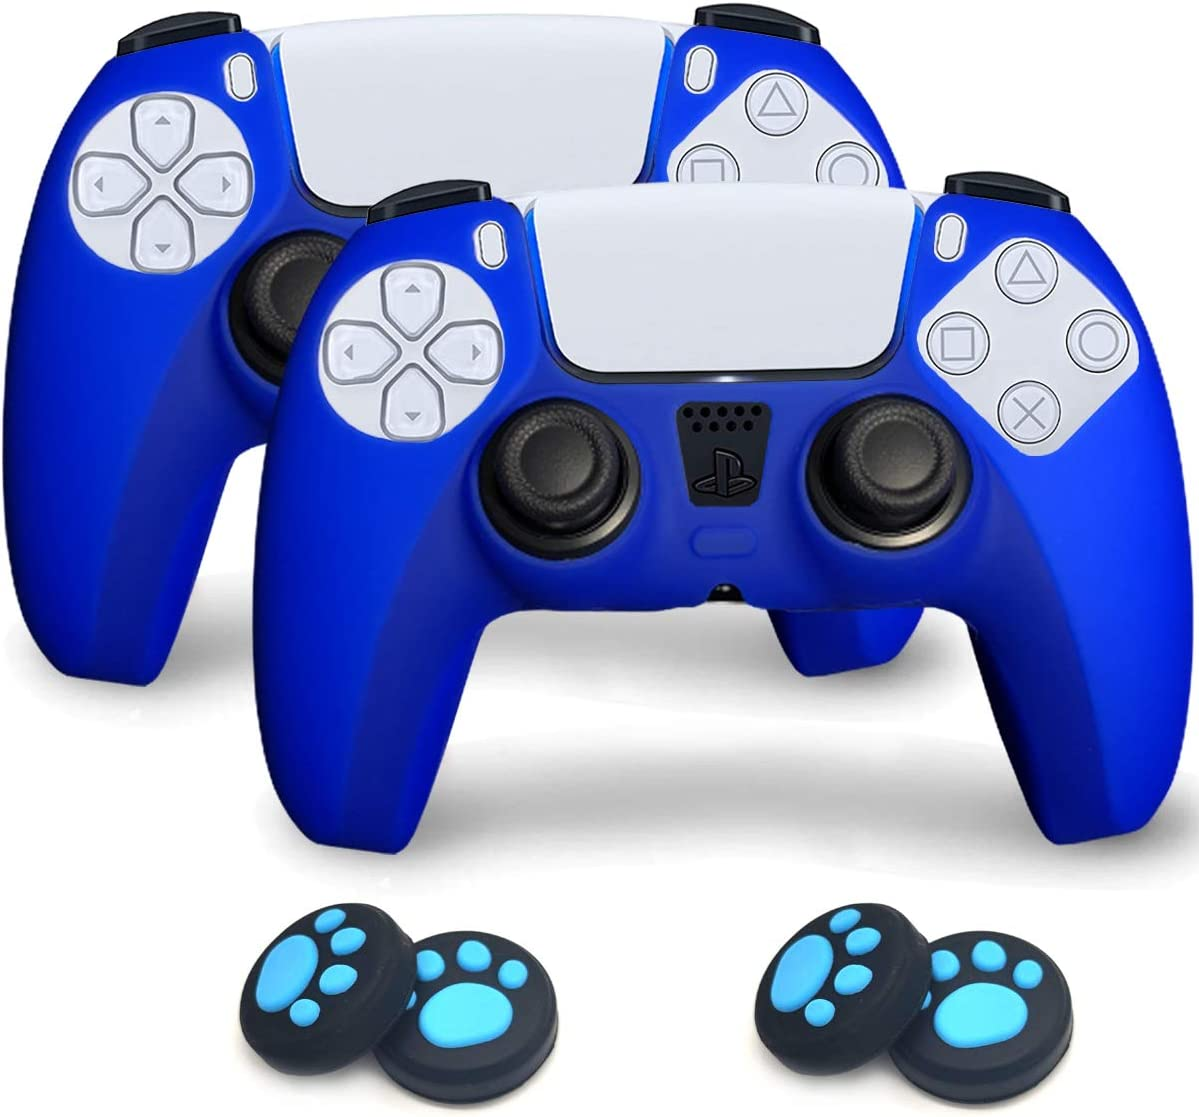 Sofunii 2 Pack Silicone Controller Skins Anti-Slip Cover Case Protector Sleeve for Playstation 5 /PS5 Controller with 4 Pack Paw Prints Thumb Grips (Blue)